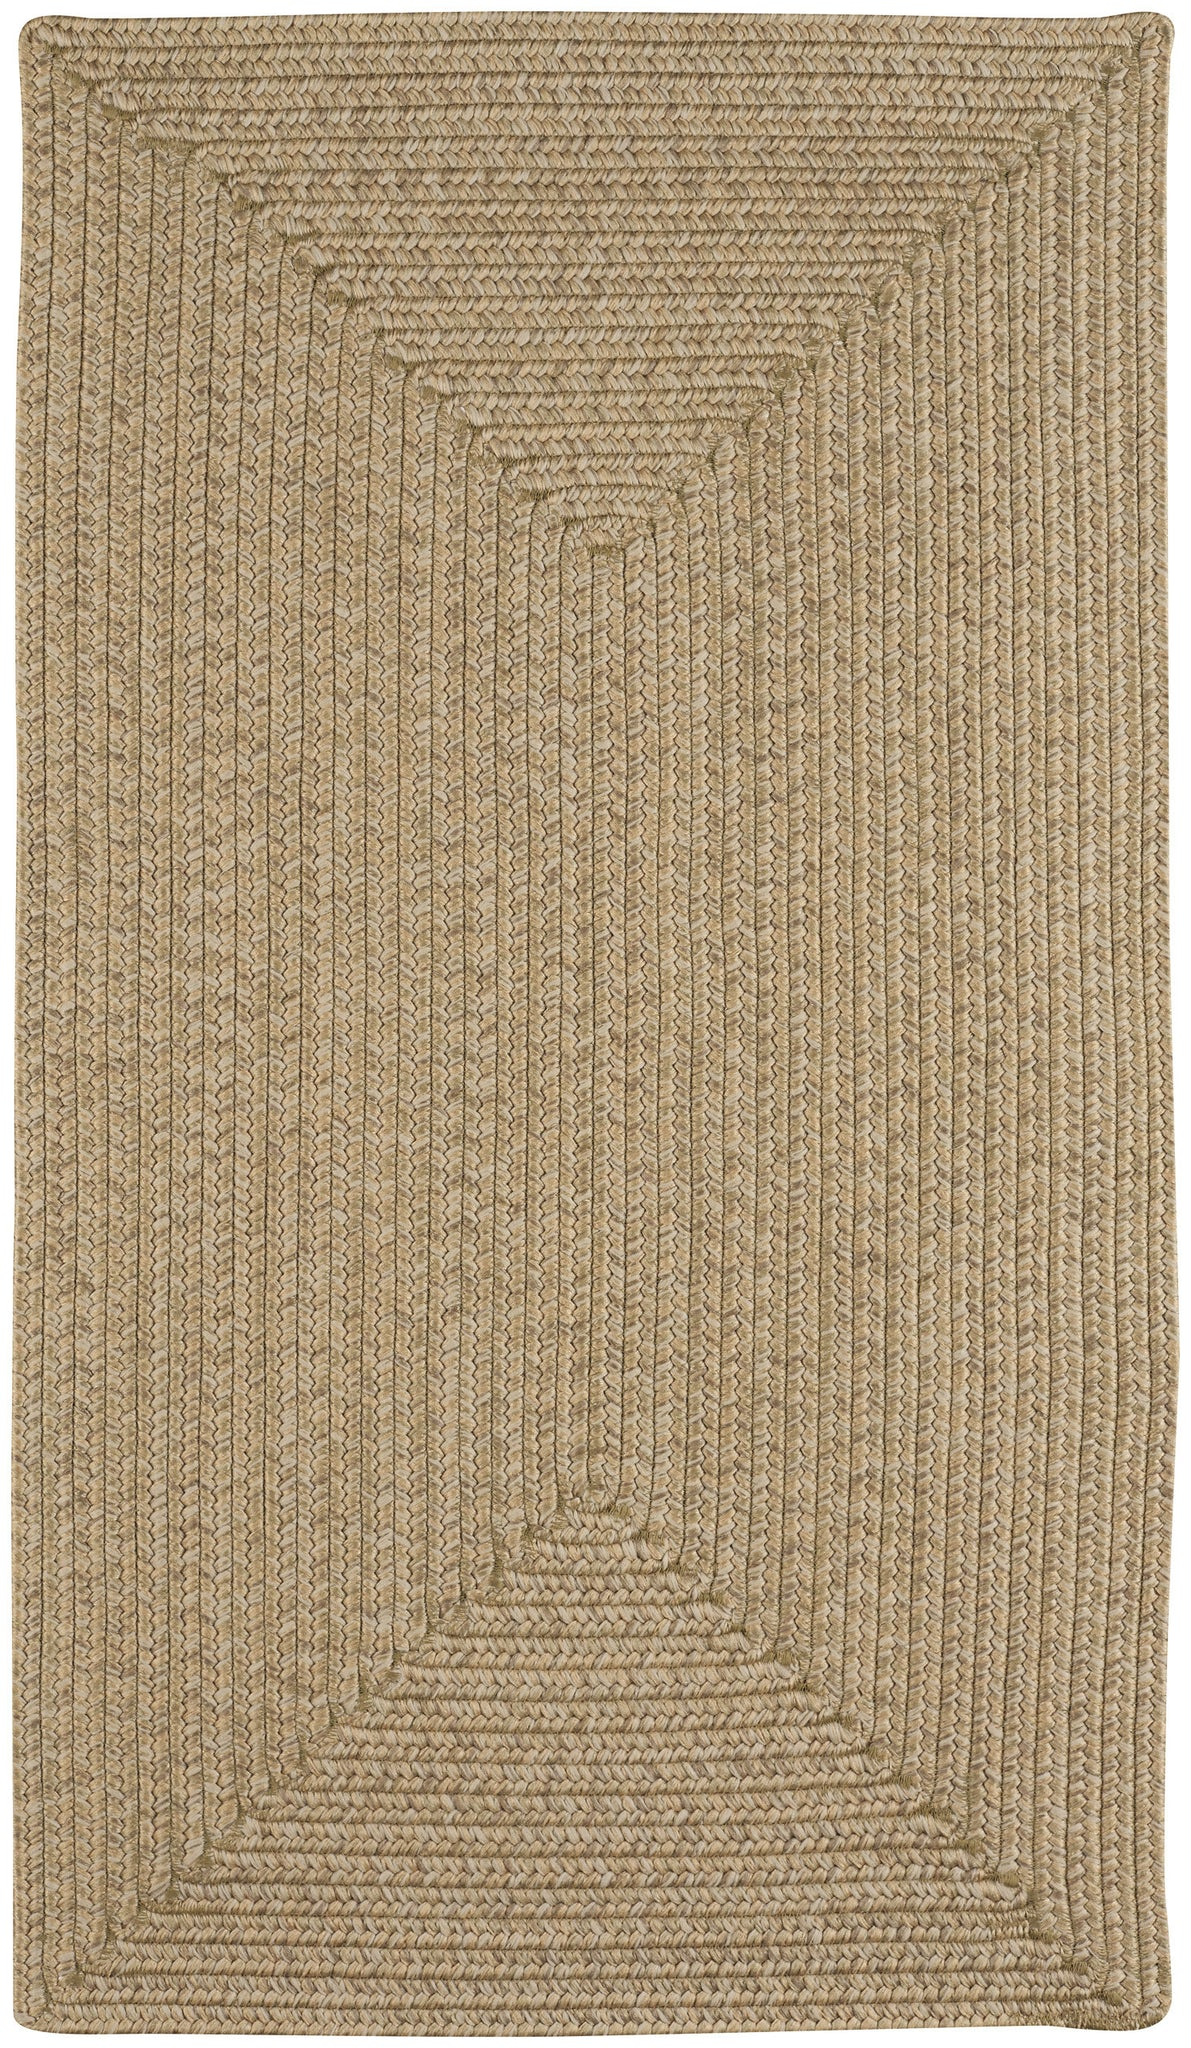 Capel Candor 0865 Tan 700 Area Rug main image